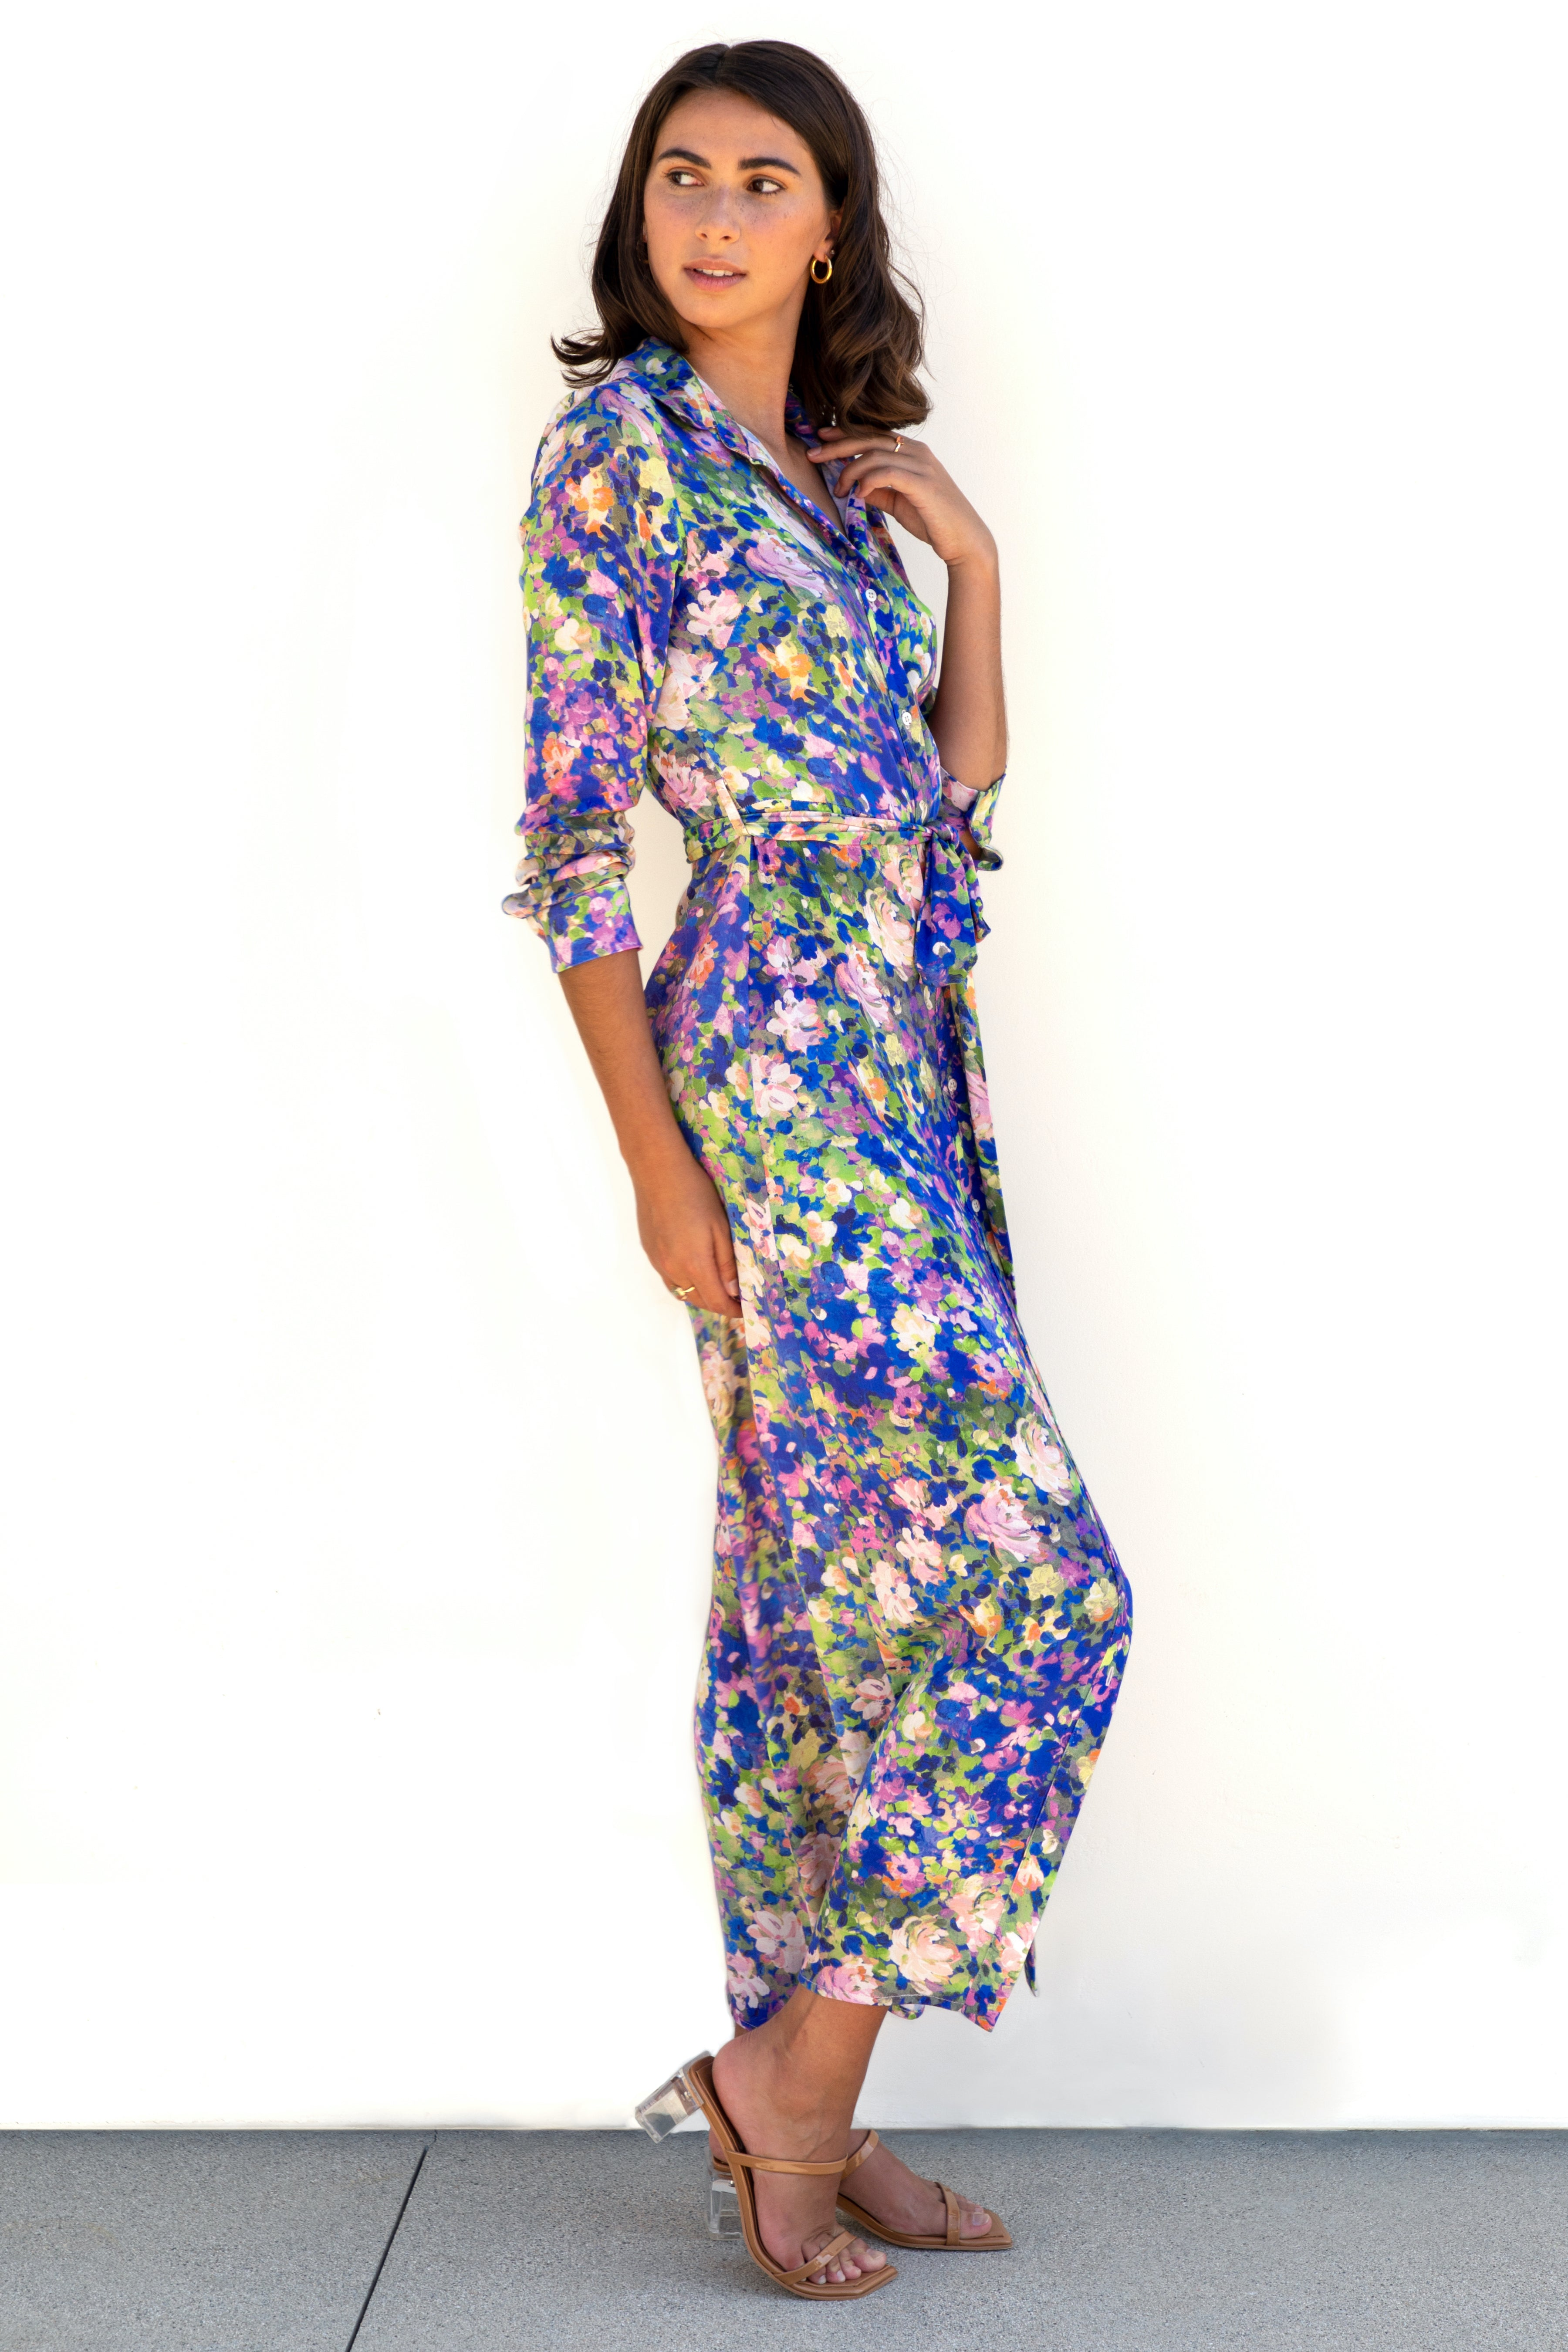 Full body side profile of model wearing Finchley Camino's maxi length blue floral collared button down dress with long sleeves rolled up to elbows